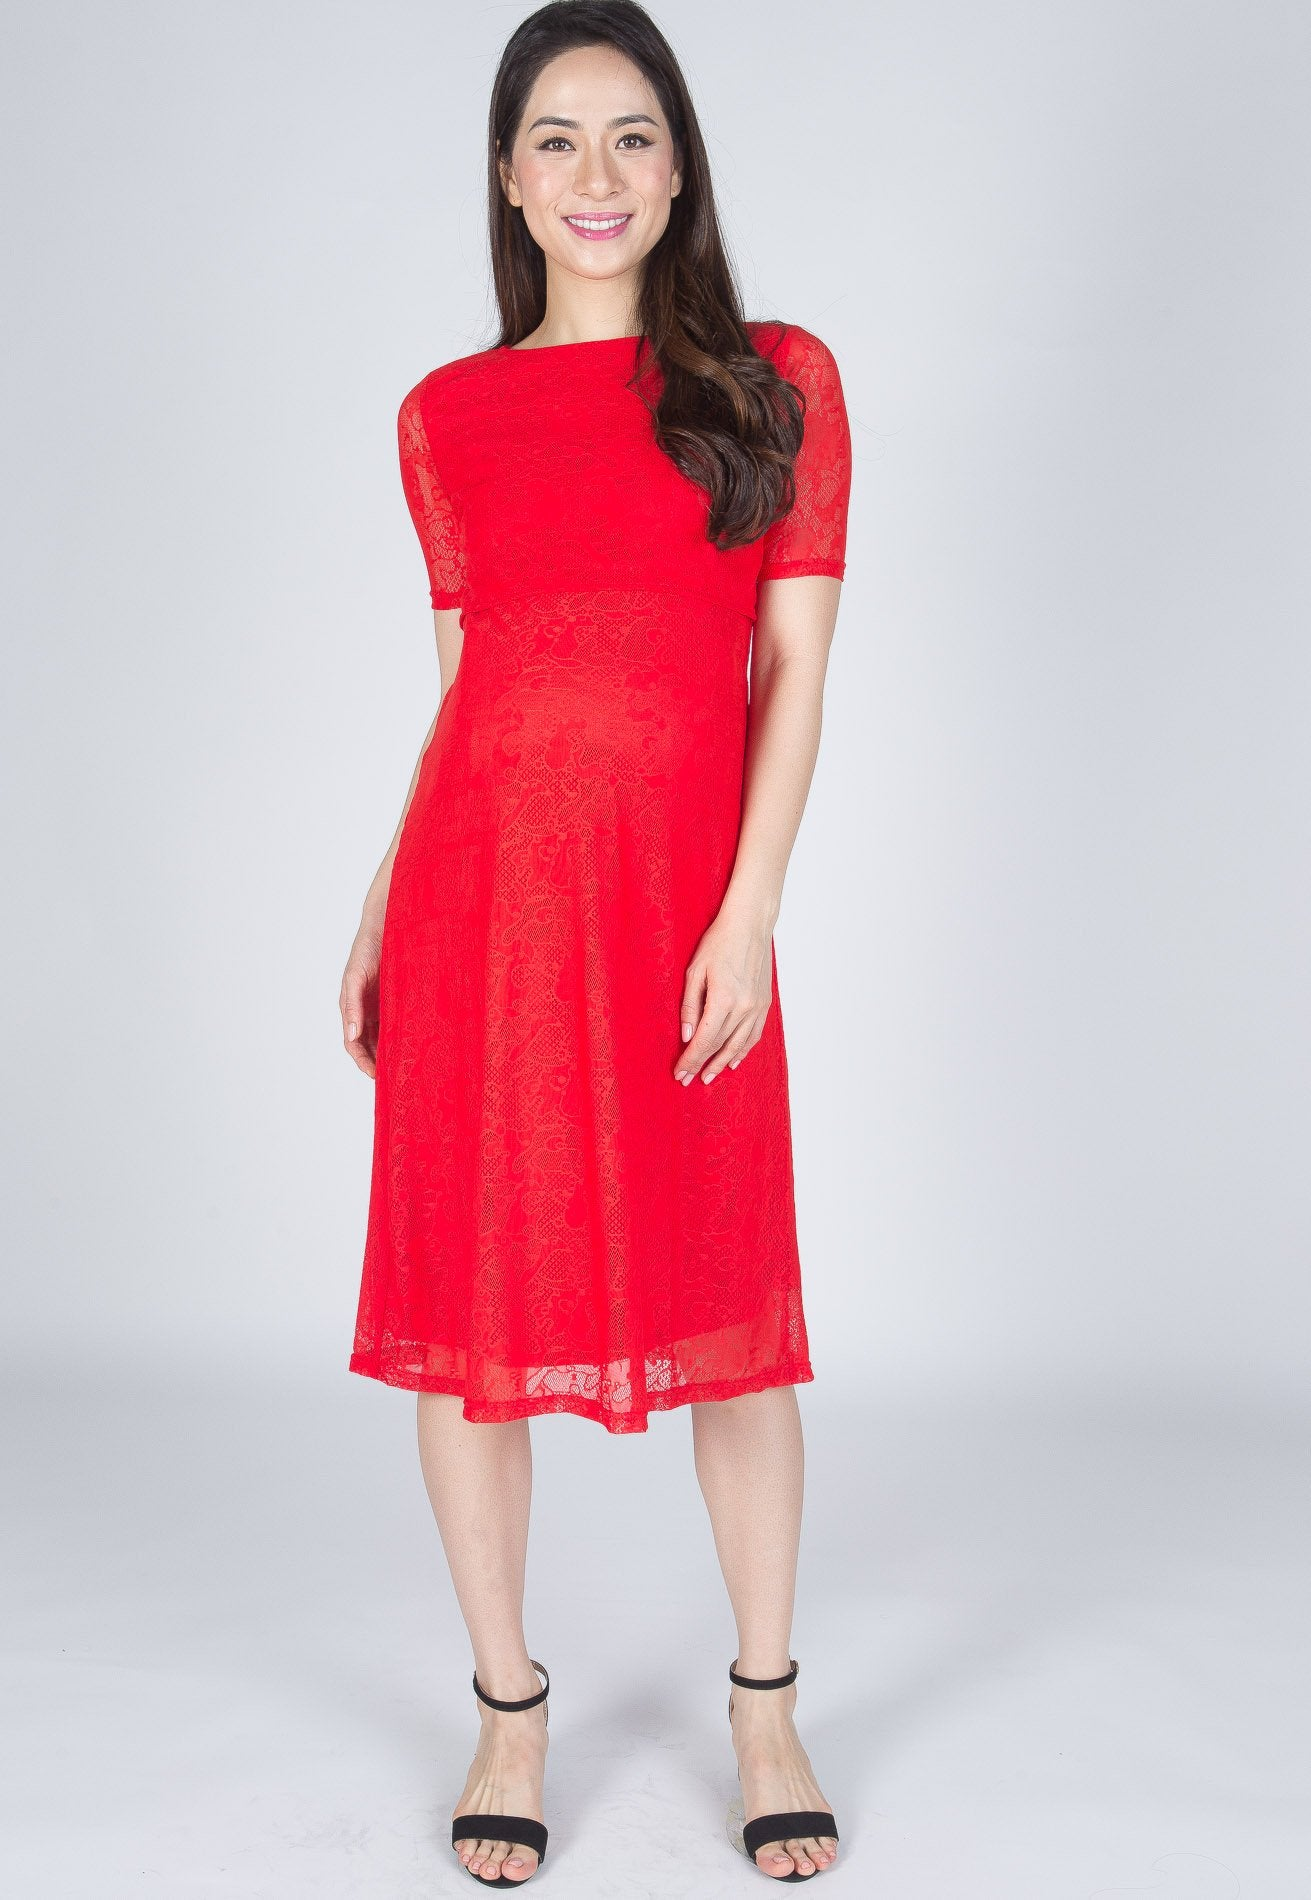 fe50283848f ... Mothercot SALE Red Abigail Nursing Dress by JumpEatCry - Maternity and nursing  wear ...